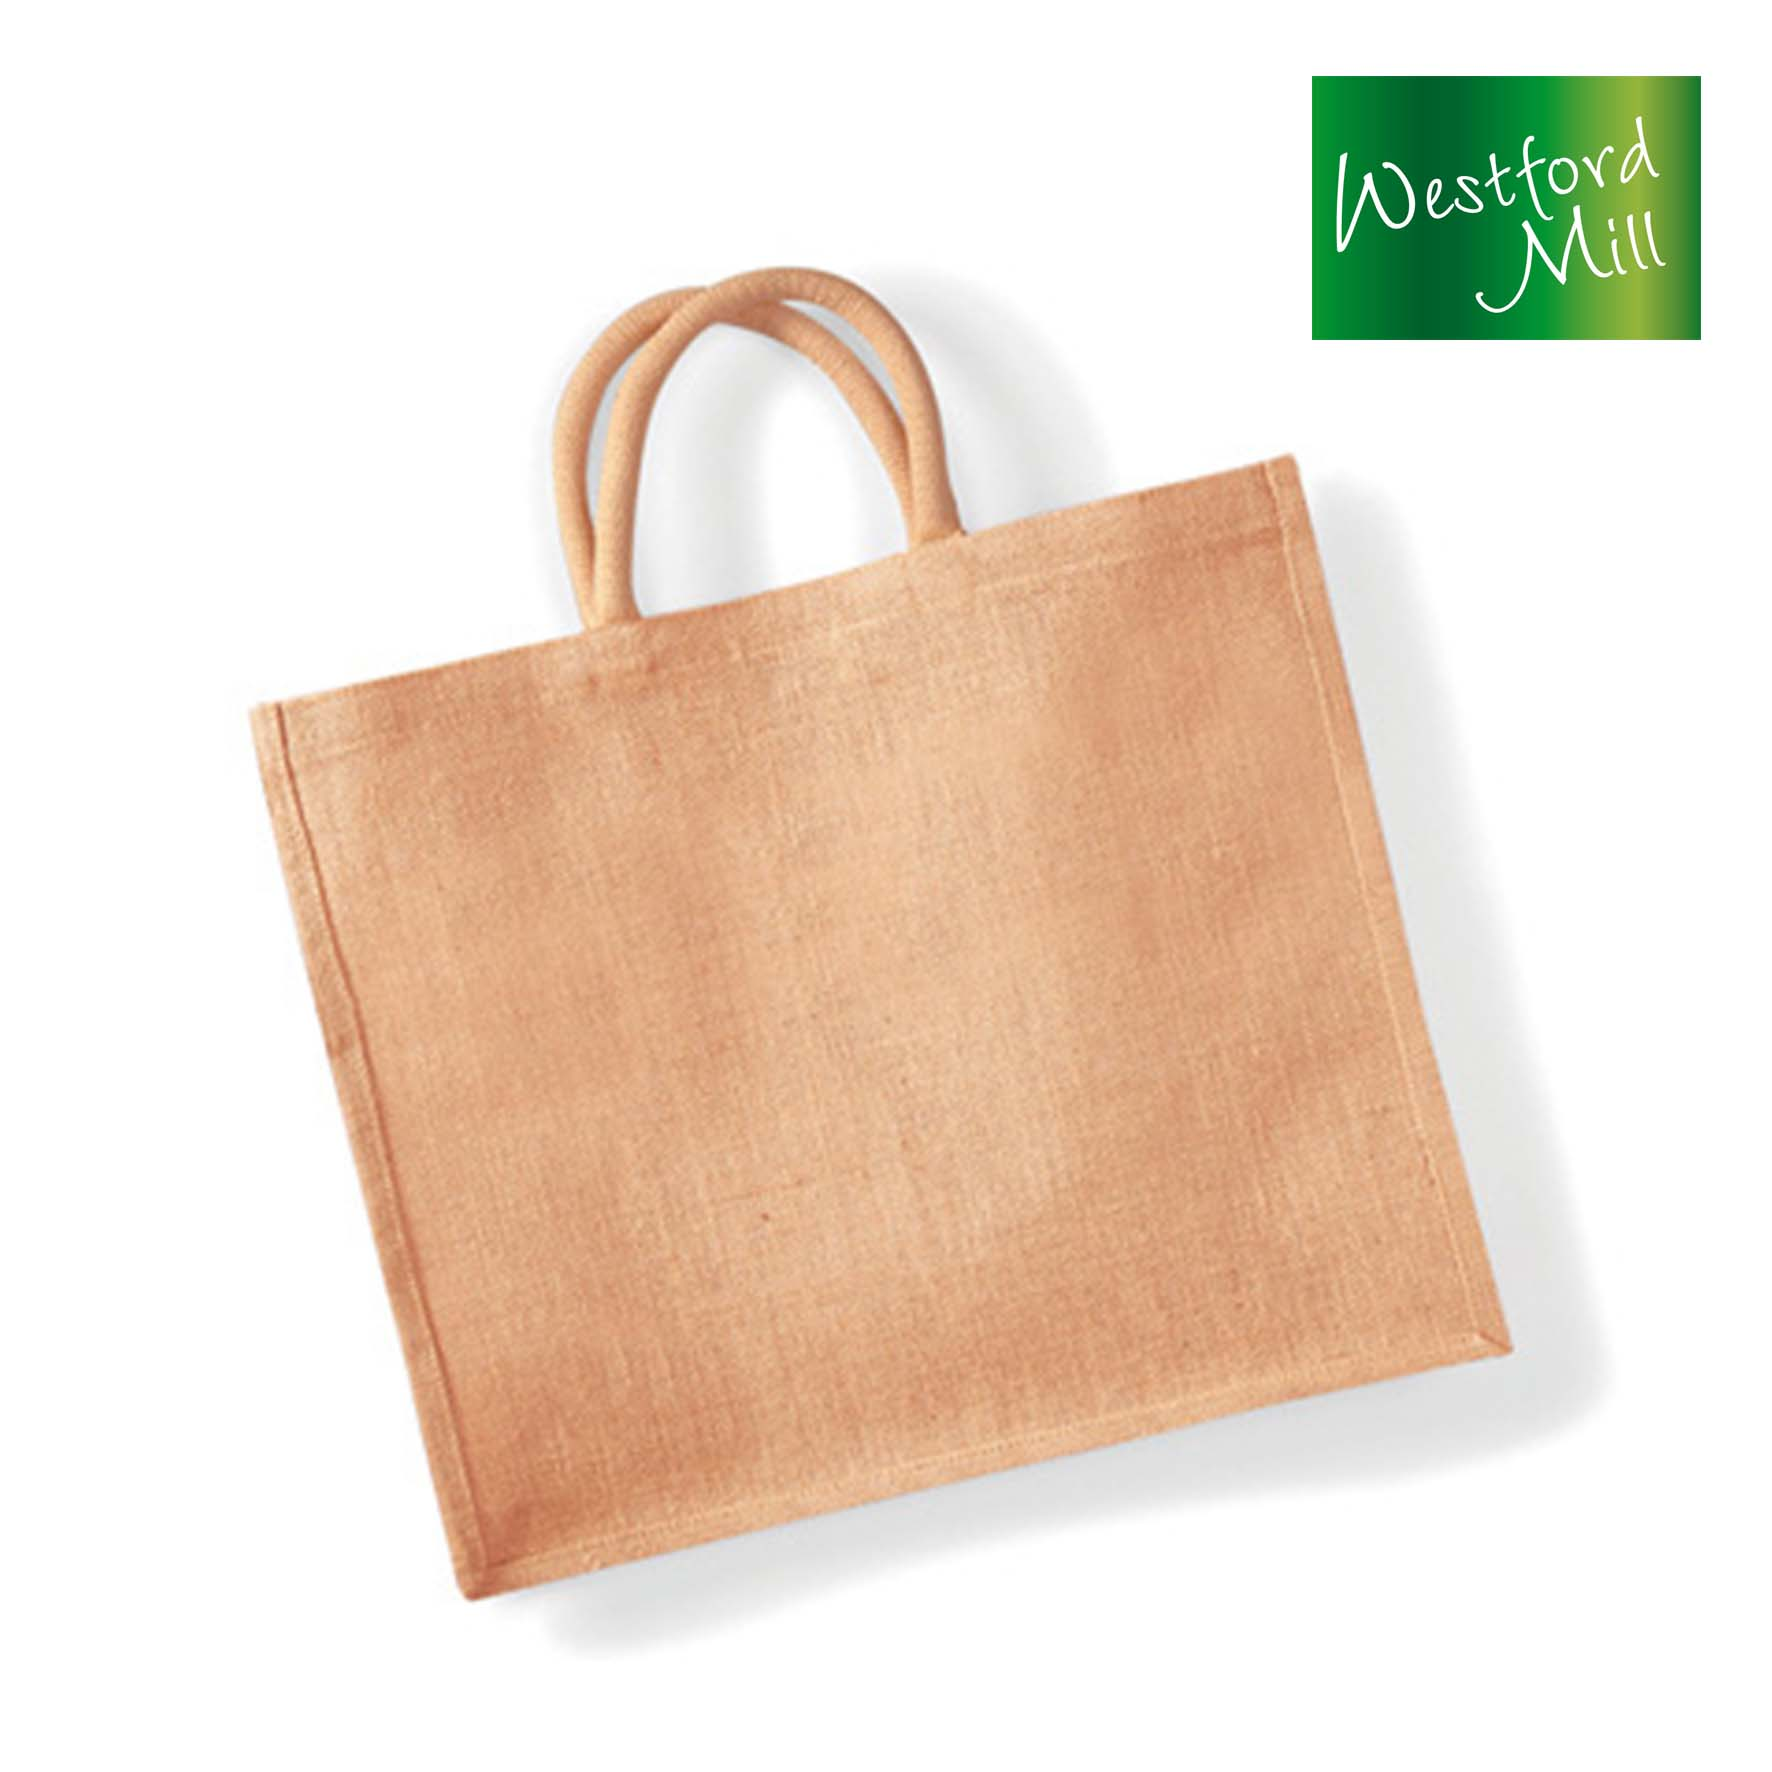 WM408 - Jumbo Jute Shopper Westford Mill